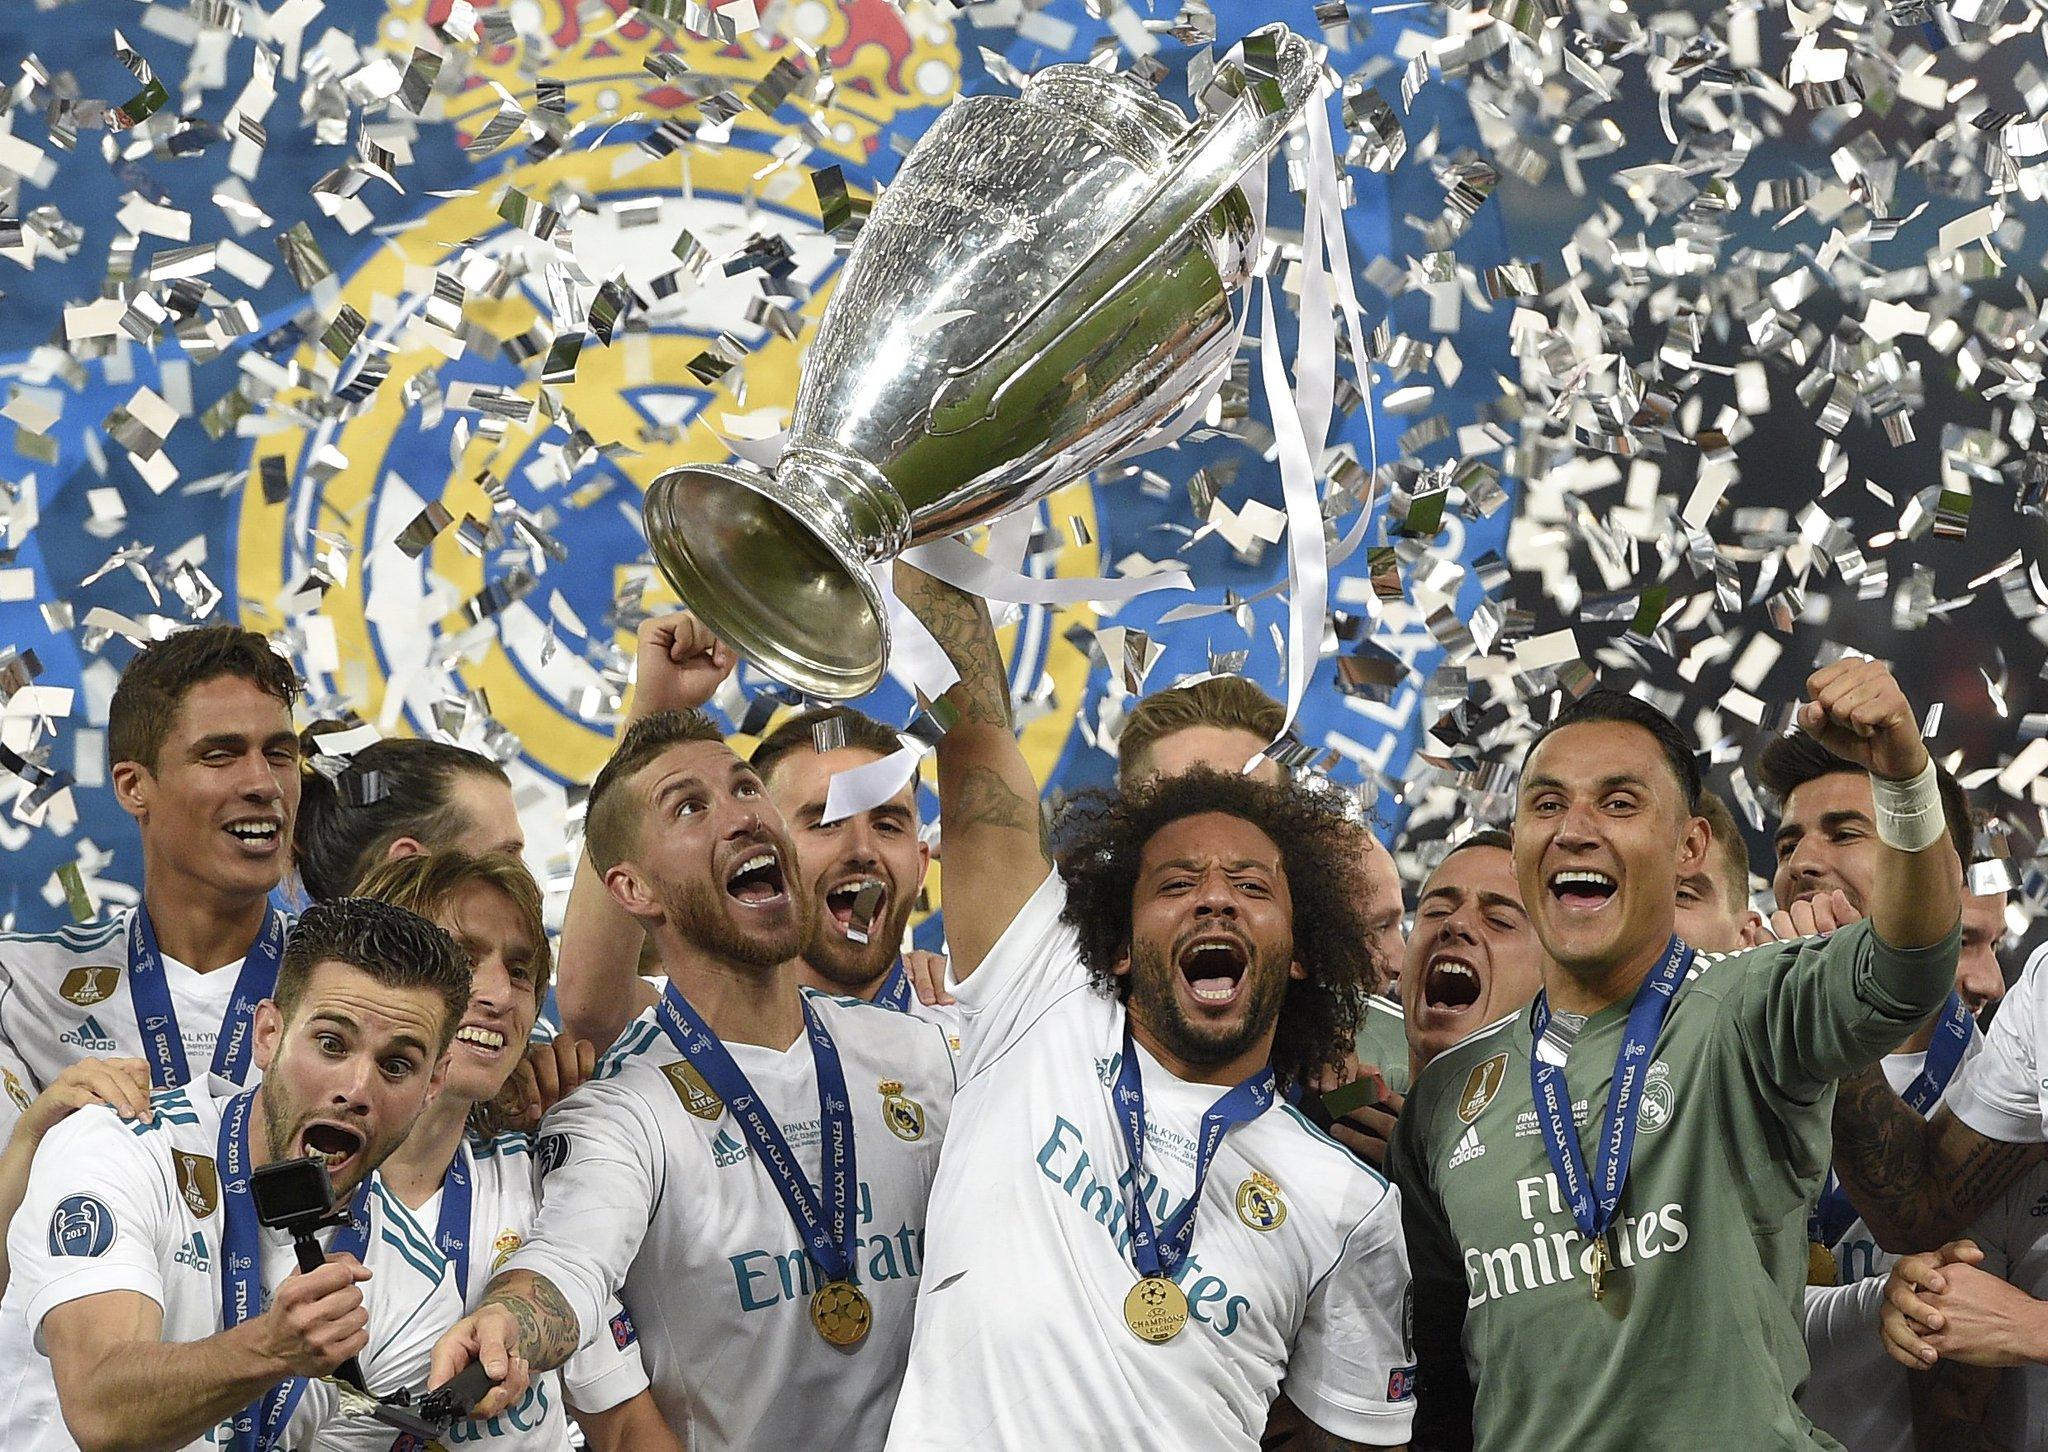 ♚ ⚽♔ UEFA Champions League 2017–18 season - match updates, fixtures, videos and discussiions ♔⚽♚